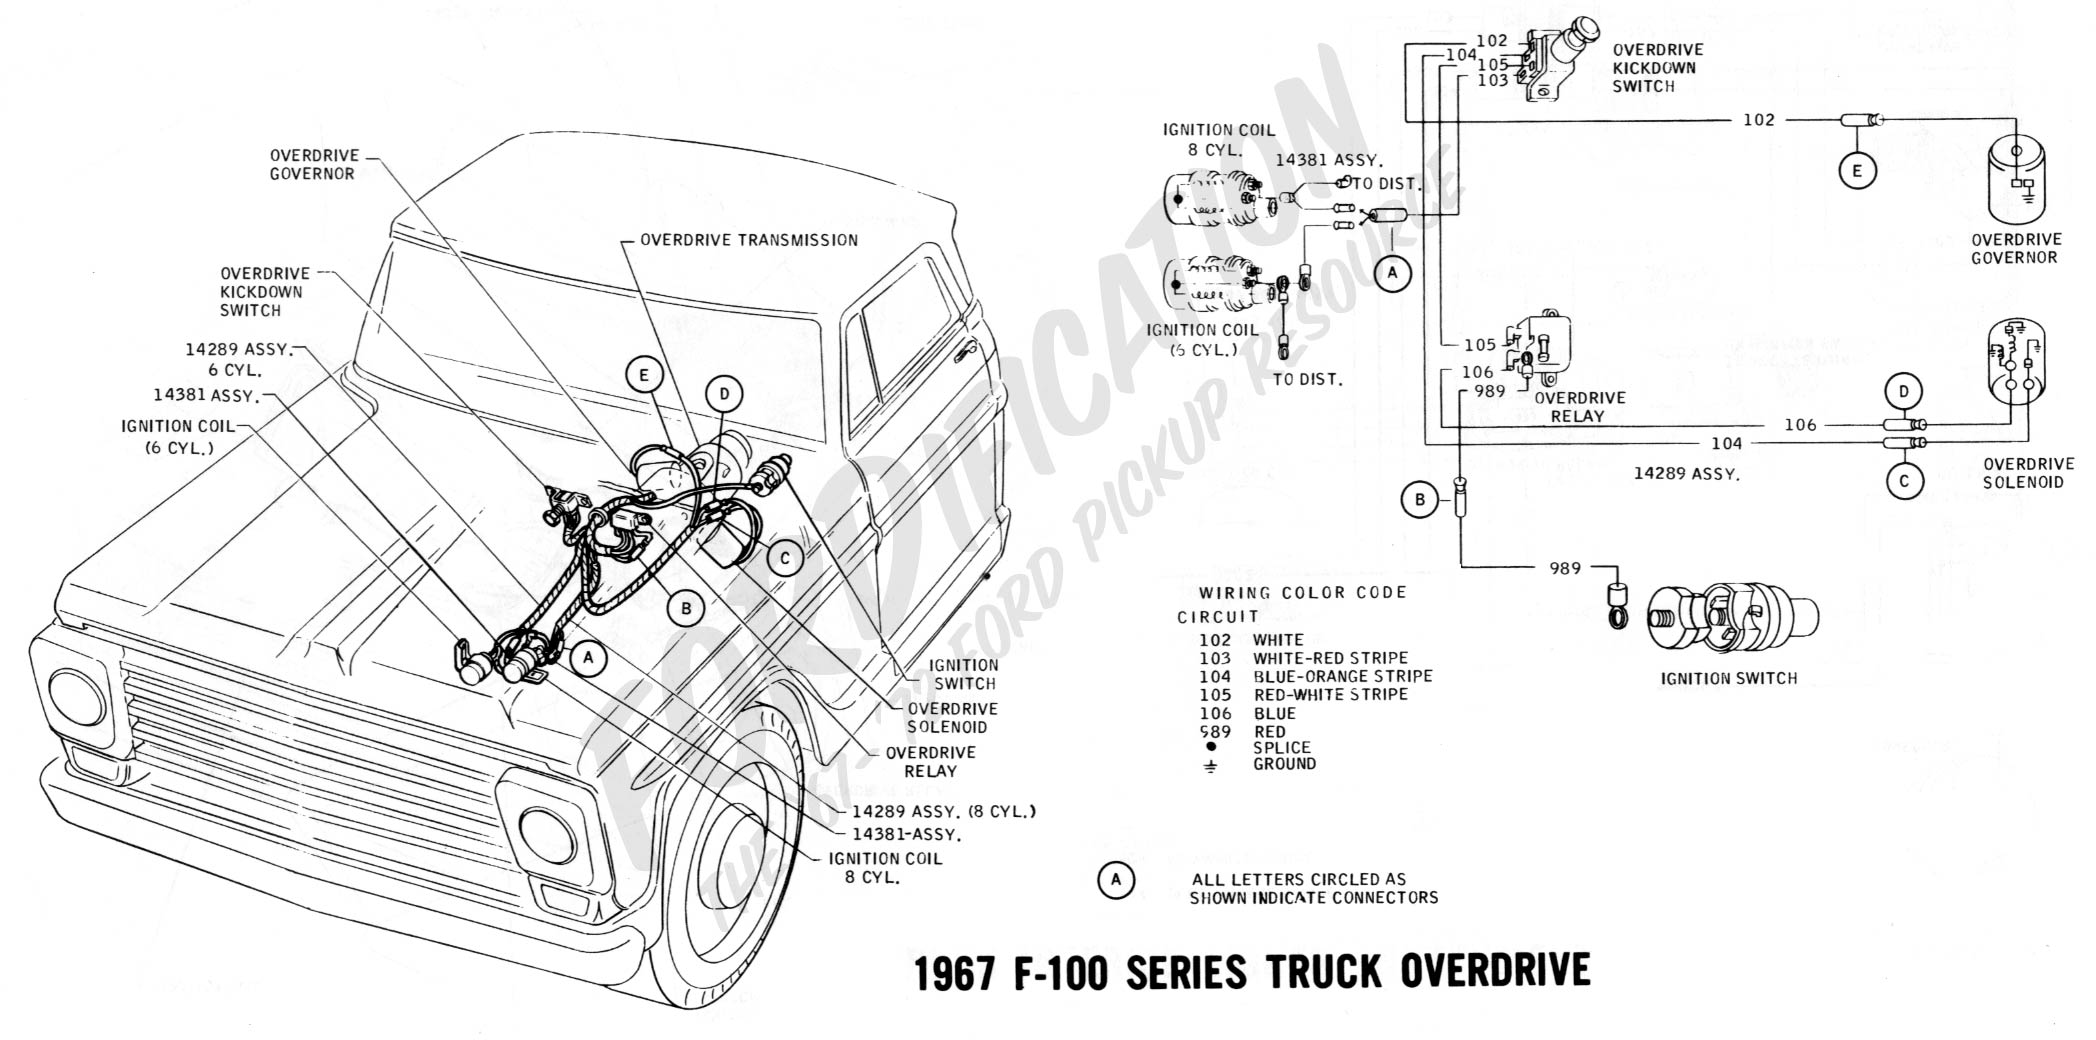 1972 F350 Ford Fuse Box Wiring Library 72 Chevy Truck Fuse Box Wiring Get  Free Image About Wiring Diagram